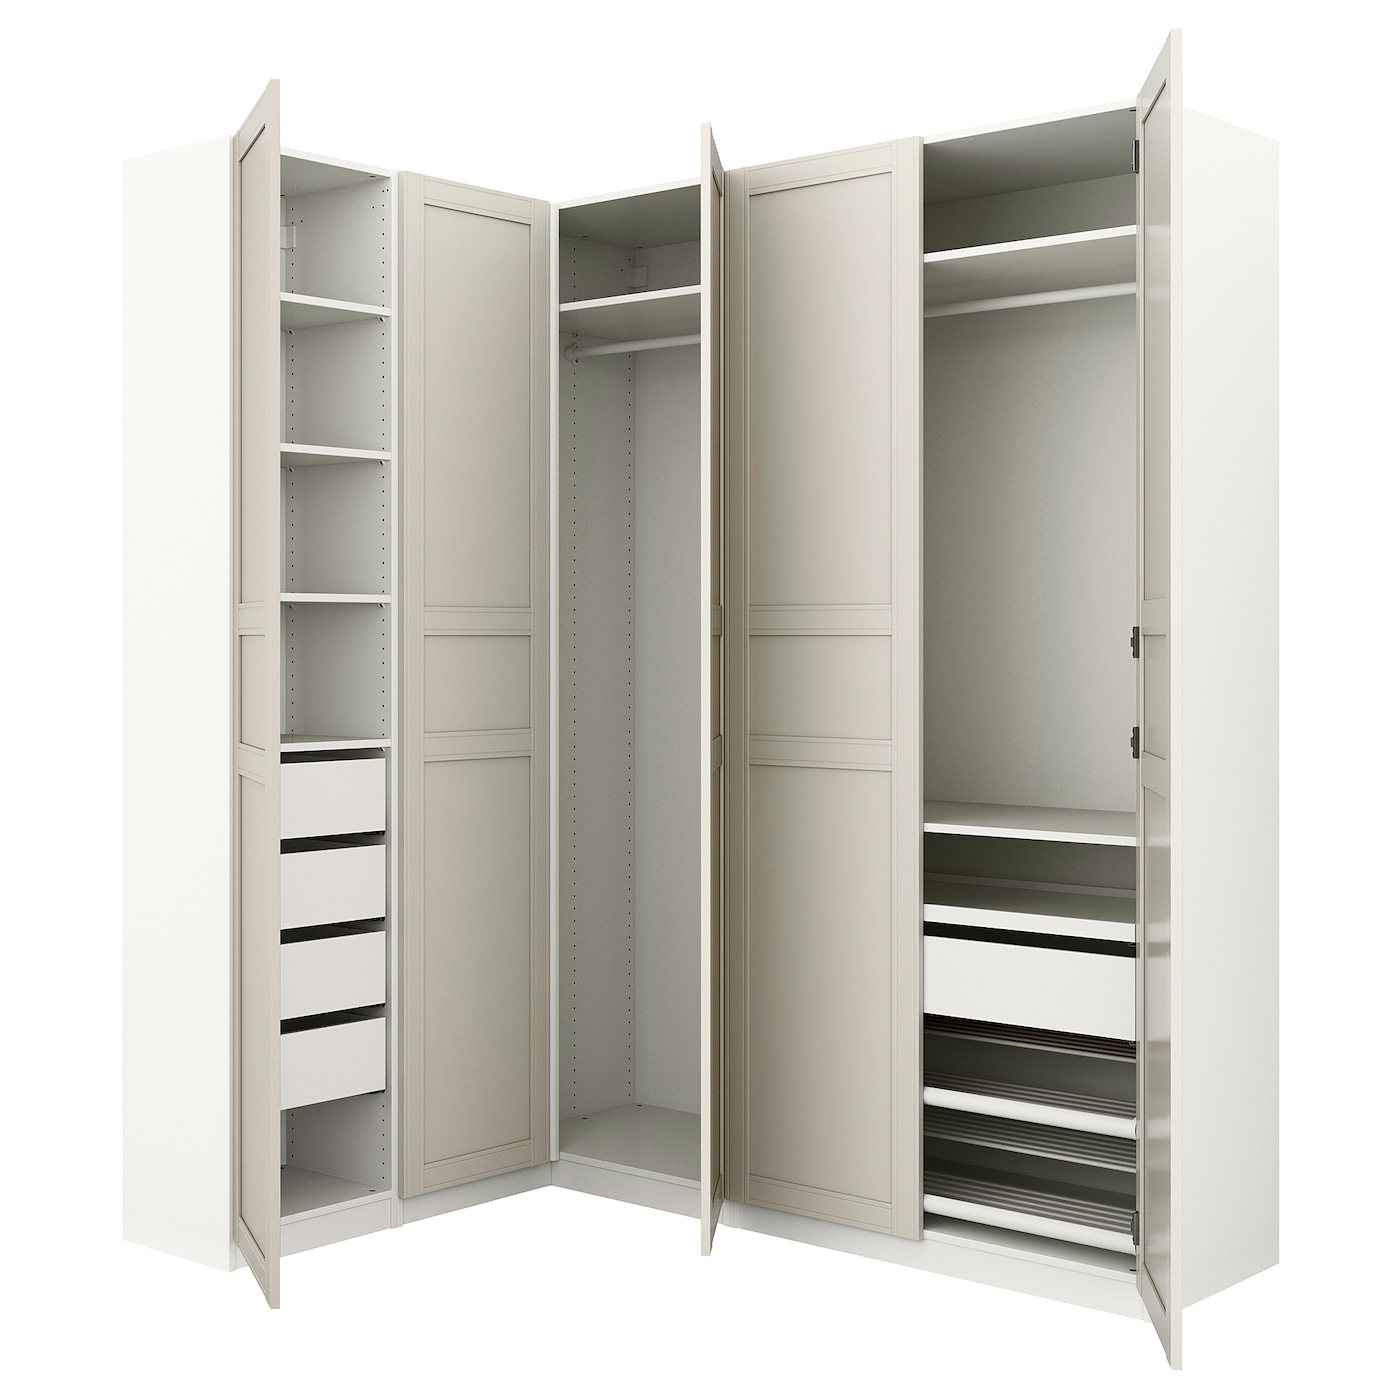 pax corner wardrobe white flisberget light beige 160 188 x 236 cm ikea. Black Bedroom Furniture Sets. Home Design Ideas